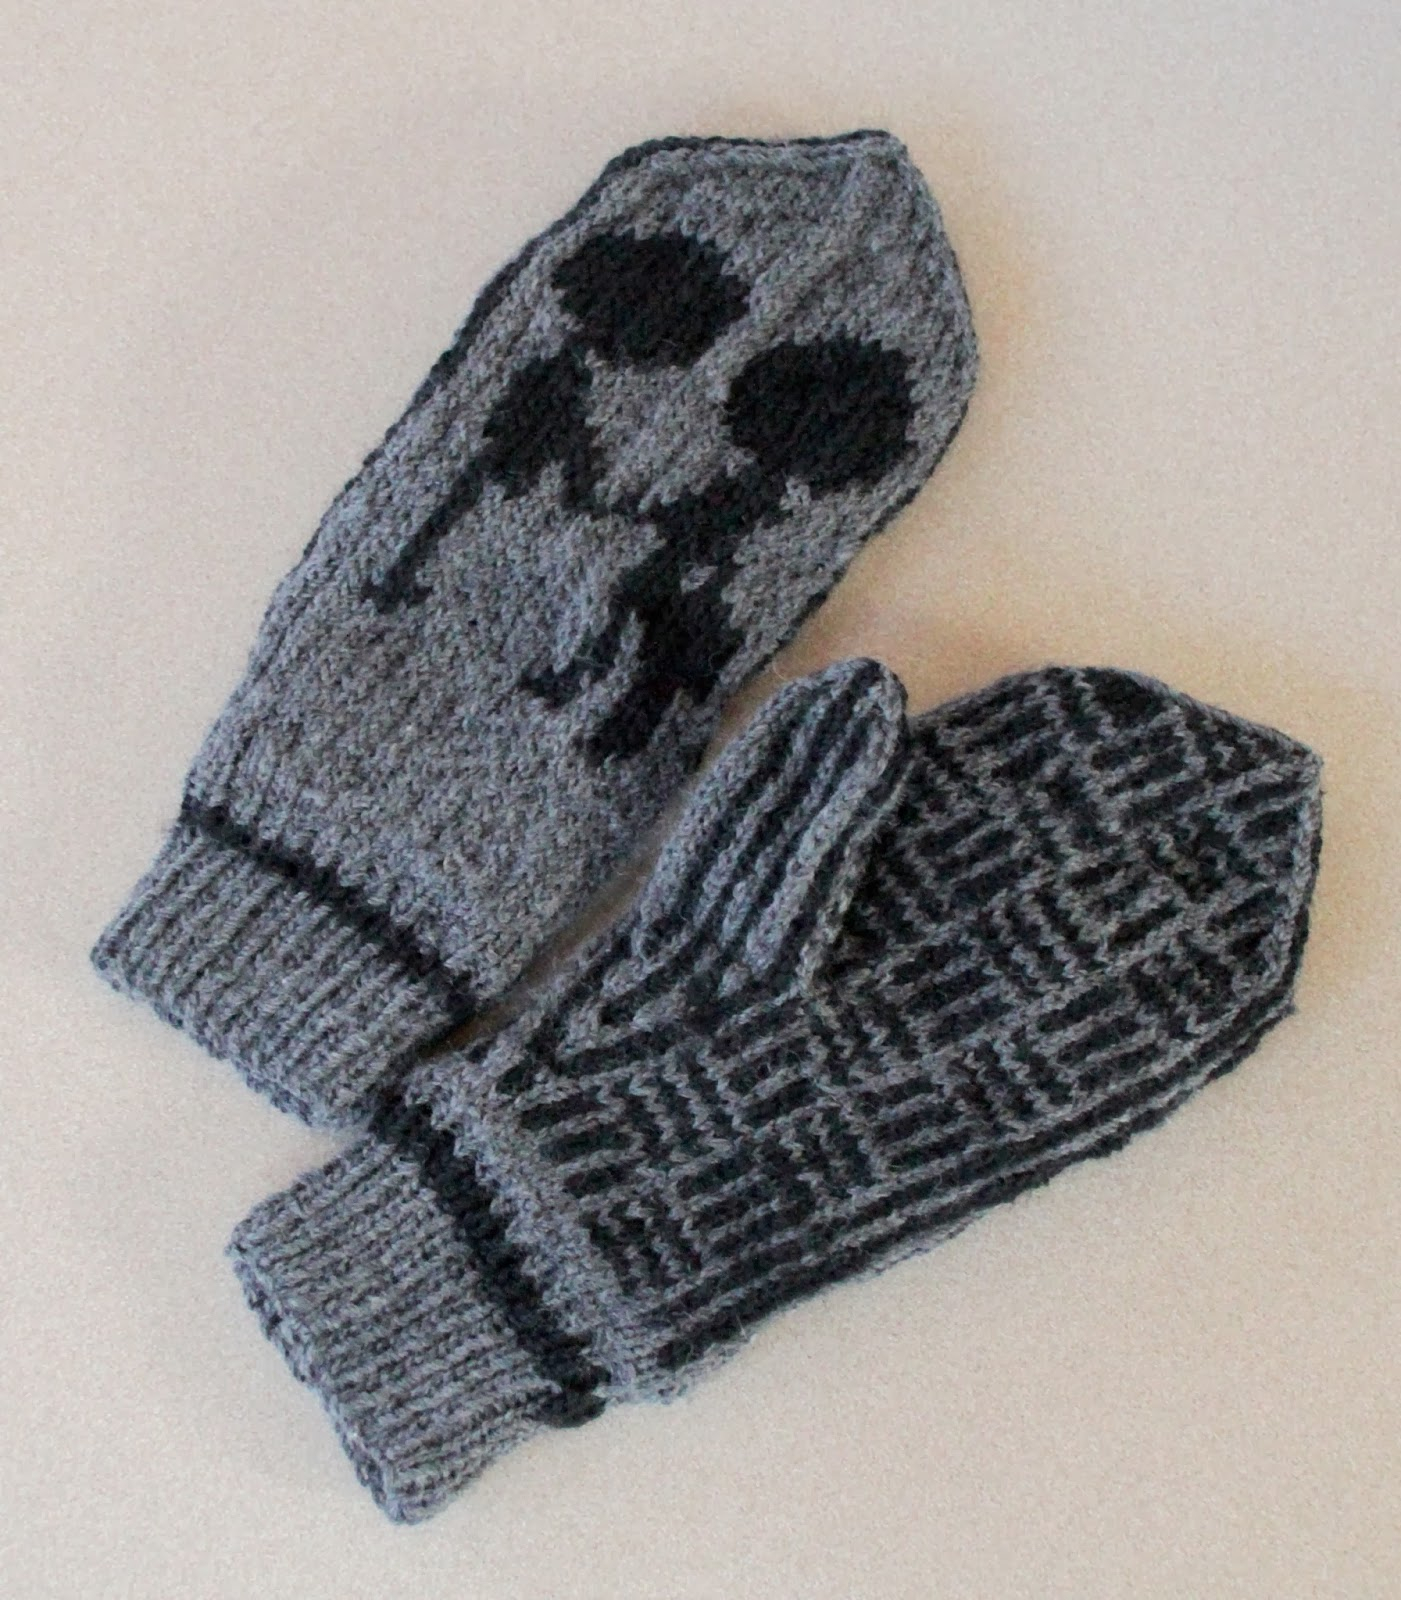 Knitting Pattern For Gloves Best Of Radiohead Mittens Knitting Pattern